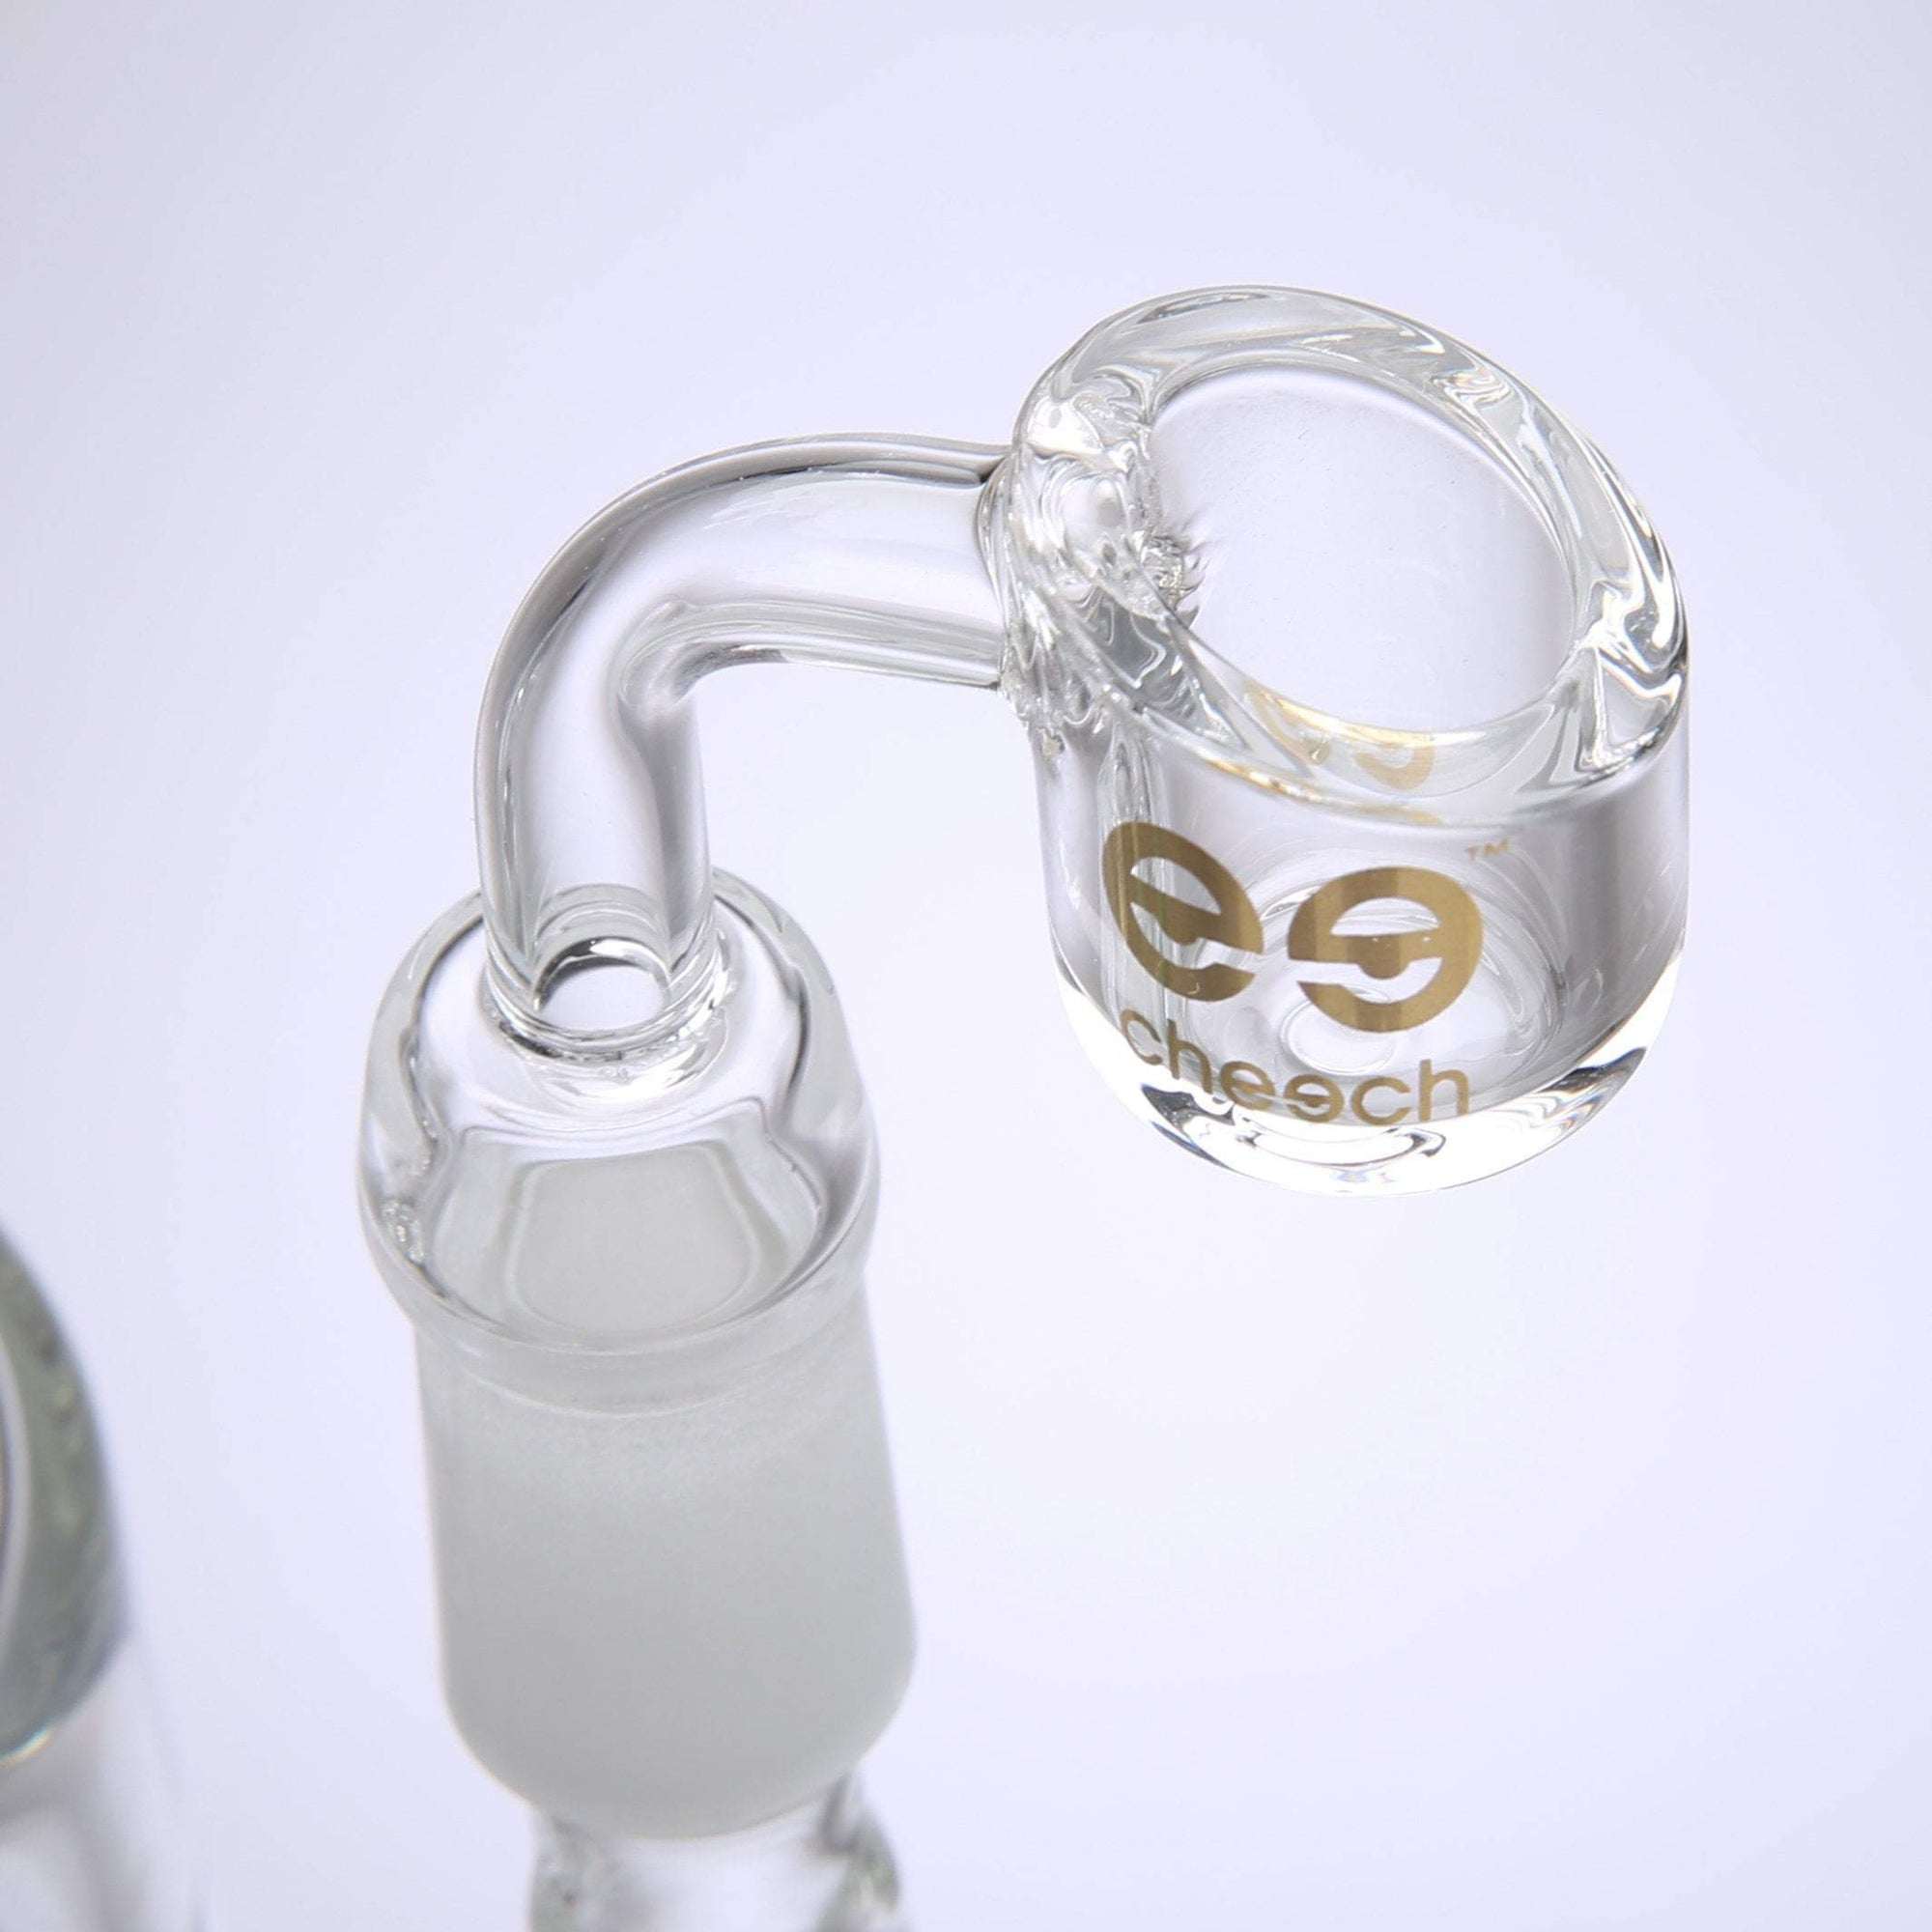 Cheech Glass - 14mm Quartz Banger